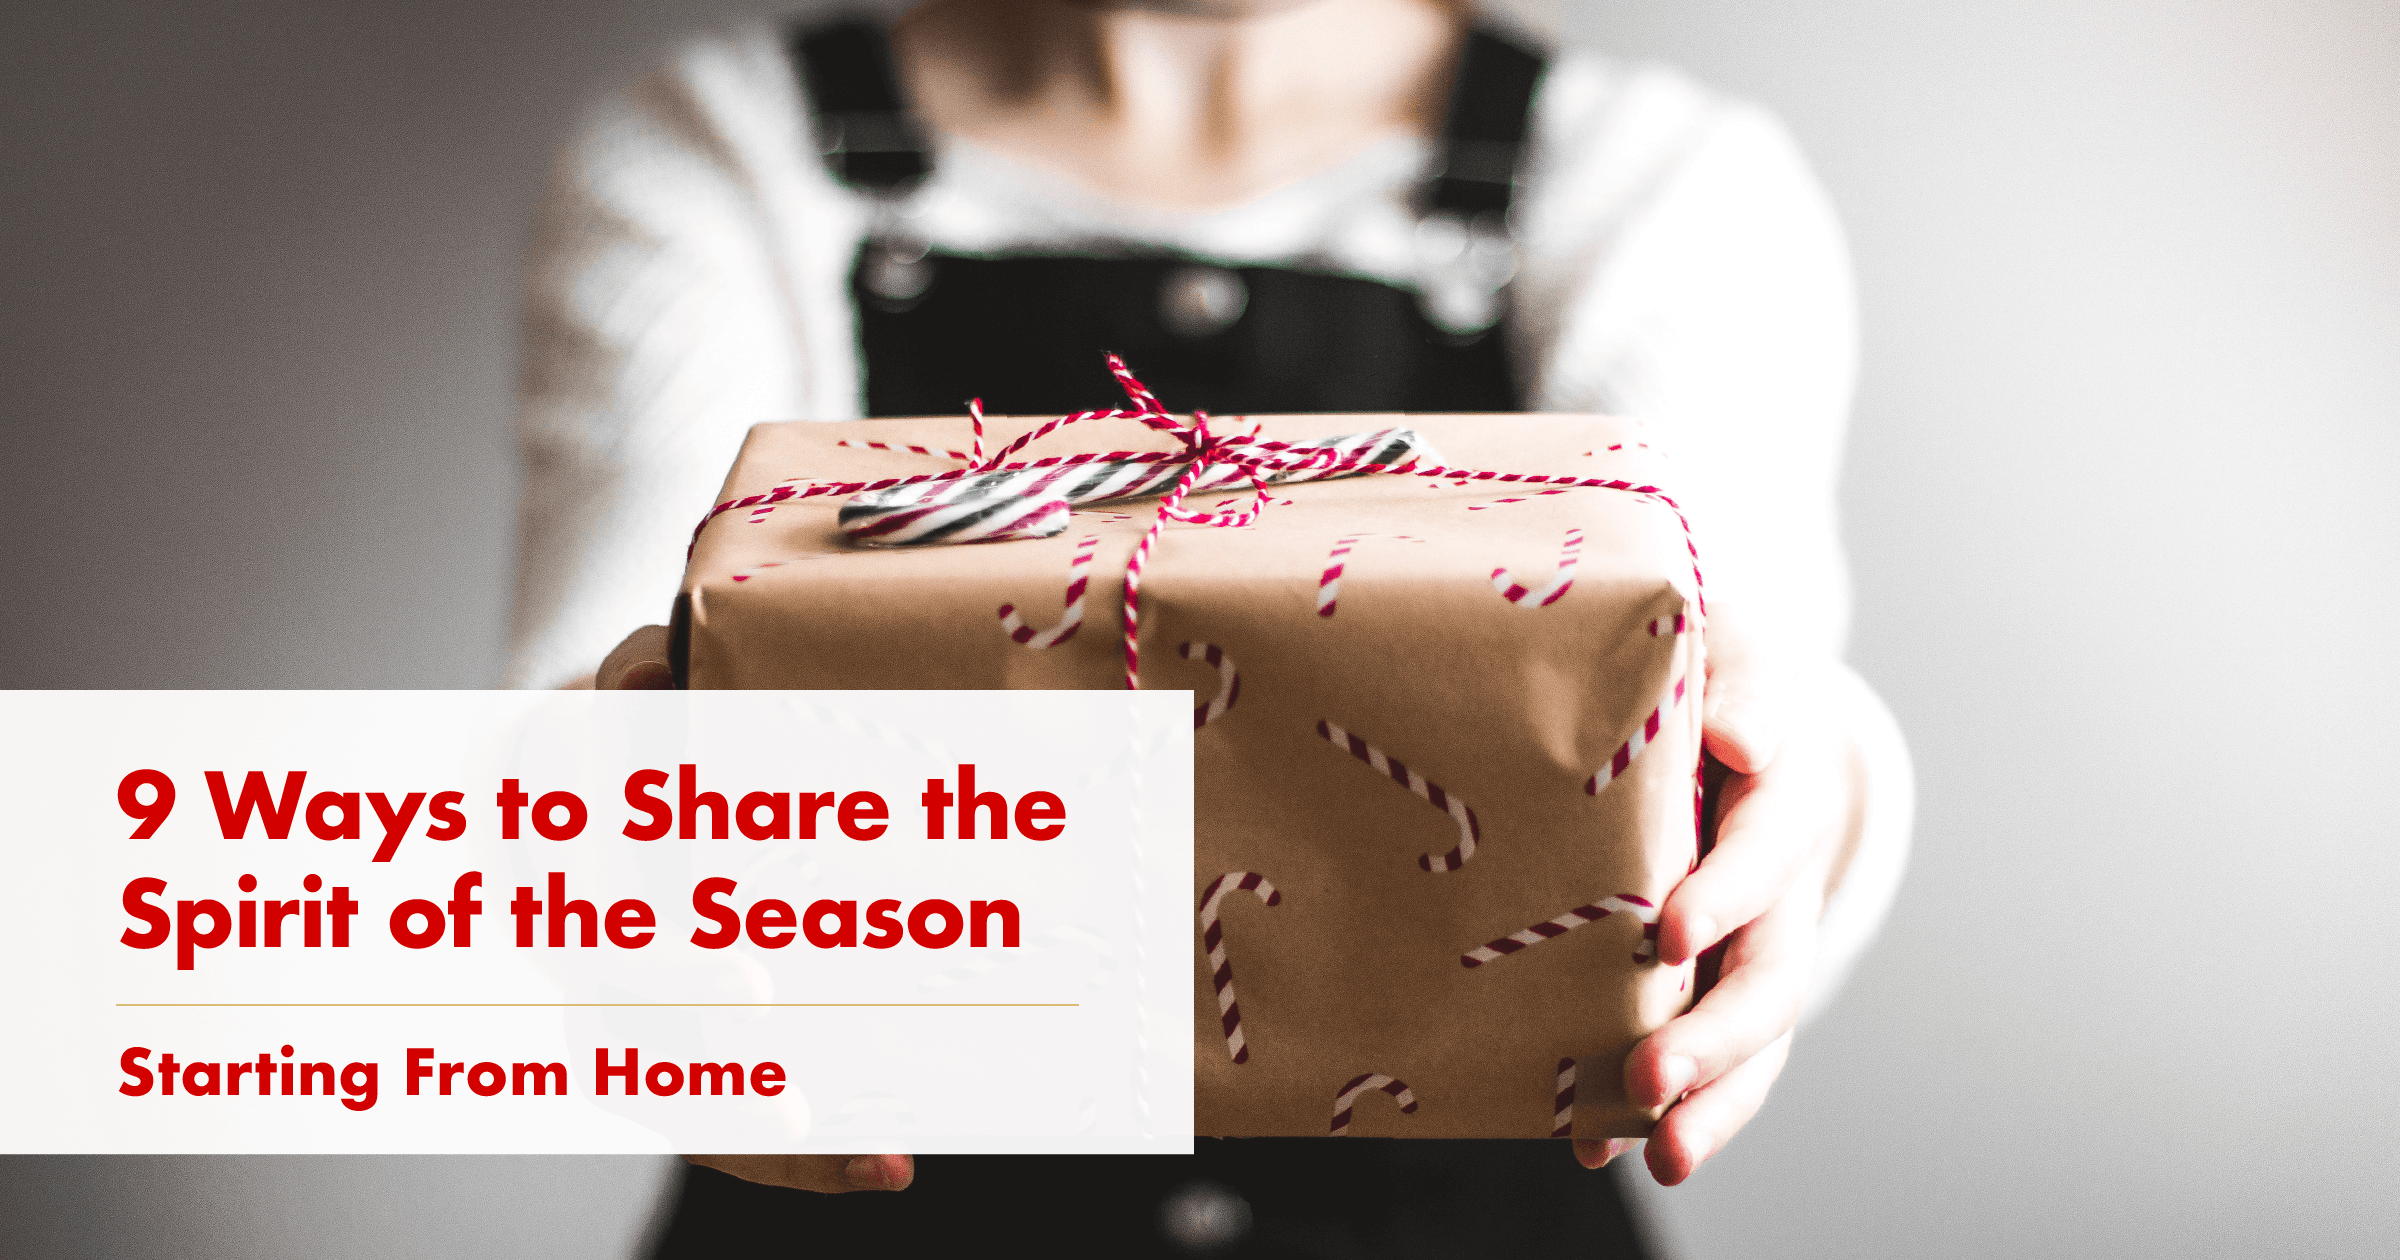 Showcase-Realty-9-Ways-To-Share-The-Spirit-Of-The-Season - Social Media Image.png